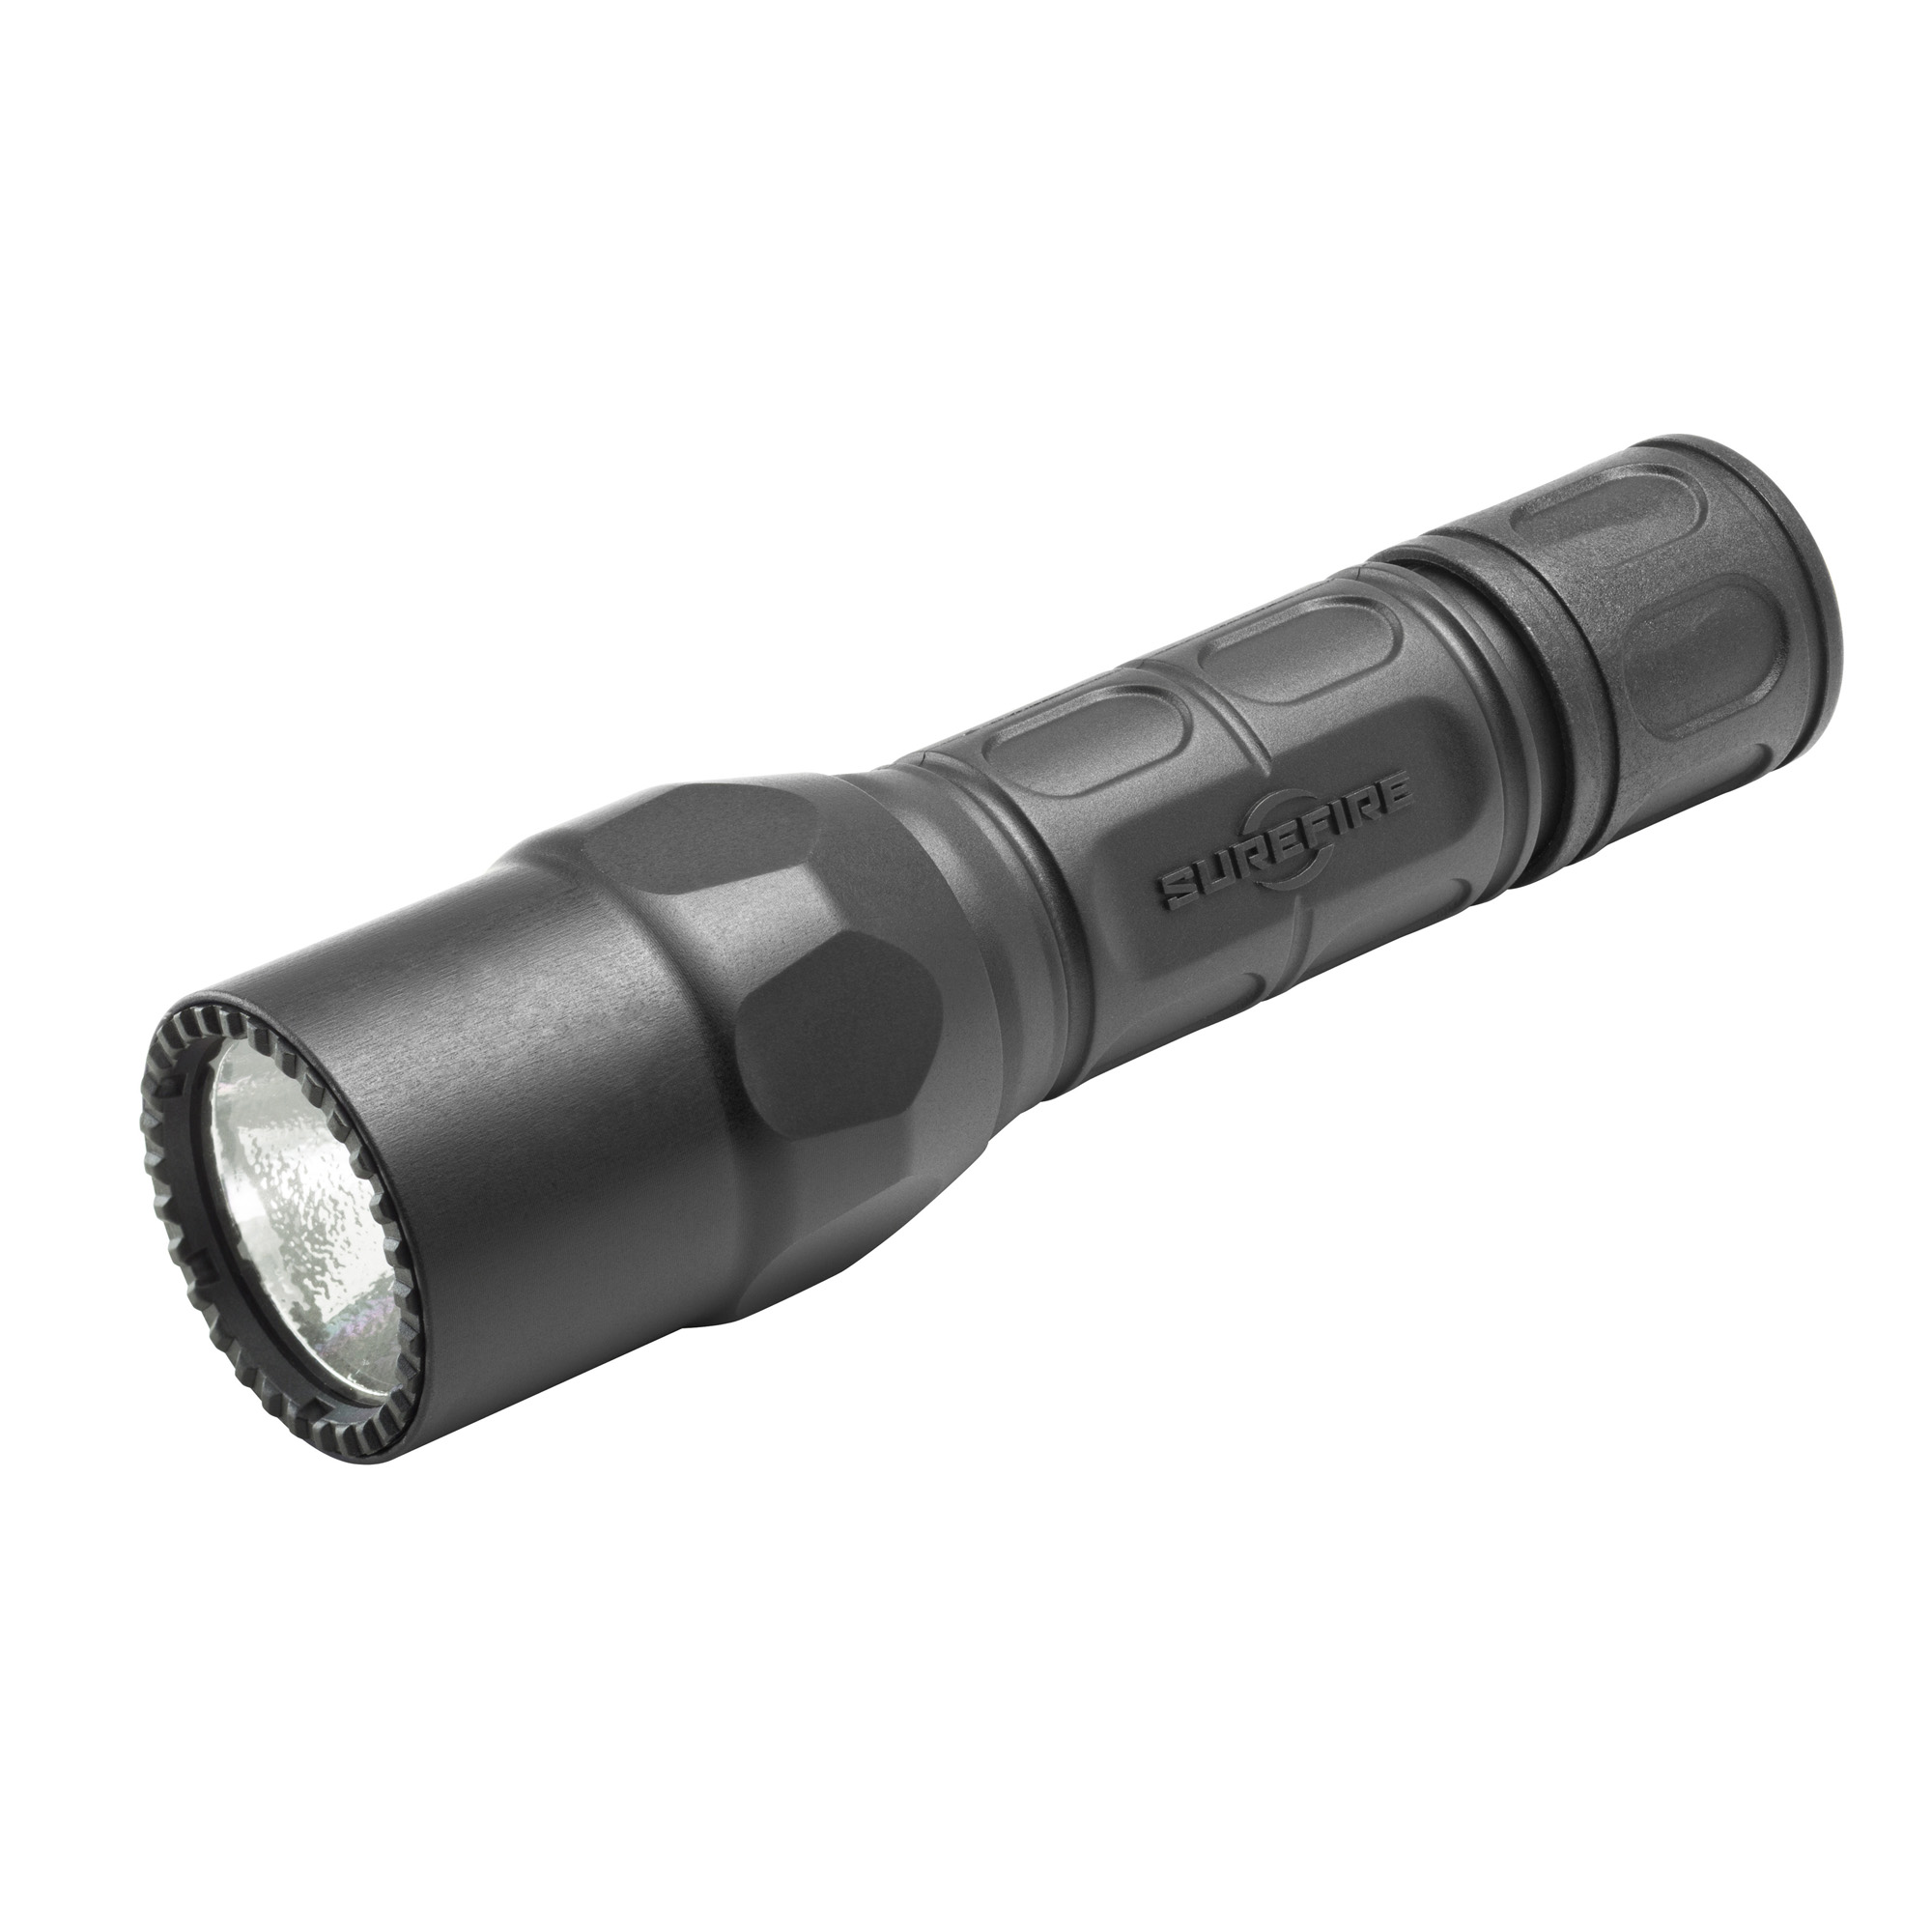 """SureFire's G2X(TM) LED illumination tools share many features"""" such as virtually indestructible high-efficiency LED emitters"""" 600 lumens of maximum output"""" precision reflectors"""" and sleek Nitrolon(R) polymer bodies. Their differences let you select the ideal light for your needs. The G2X Tactical provides a single output level - a brilliant"""" penetrating 600-lumen beam. It features a lightweight"""" high-strength Nitrolon(R) polymer body that's comfortable to hold in cold weather. The G2X Tactical comes with a press/click tail cap switch"""